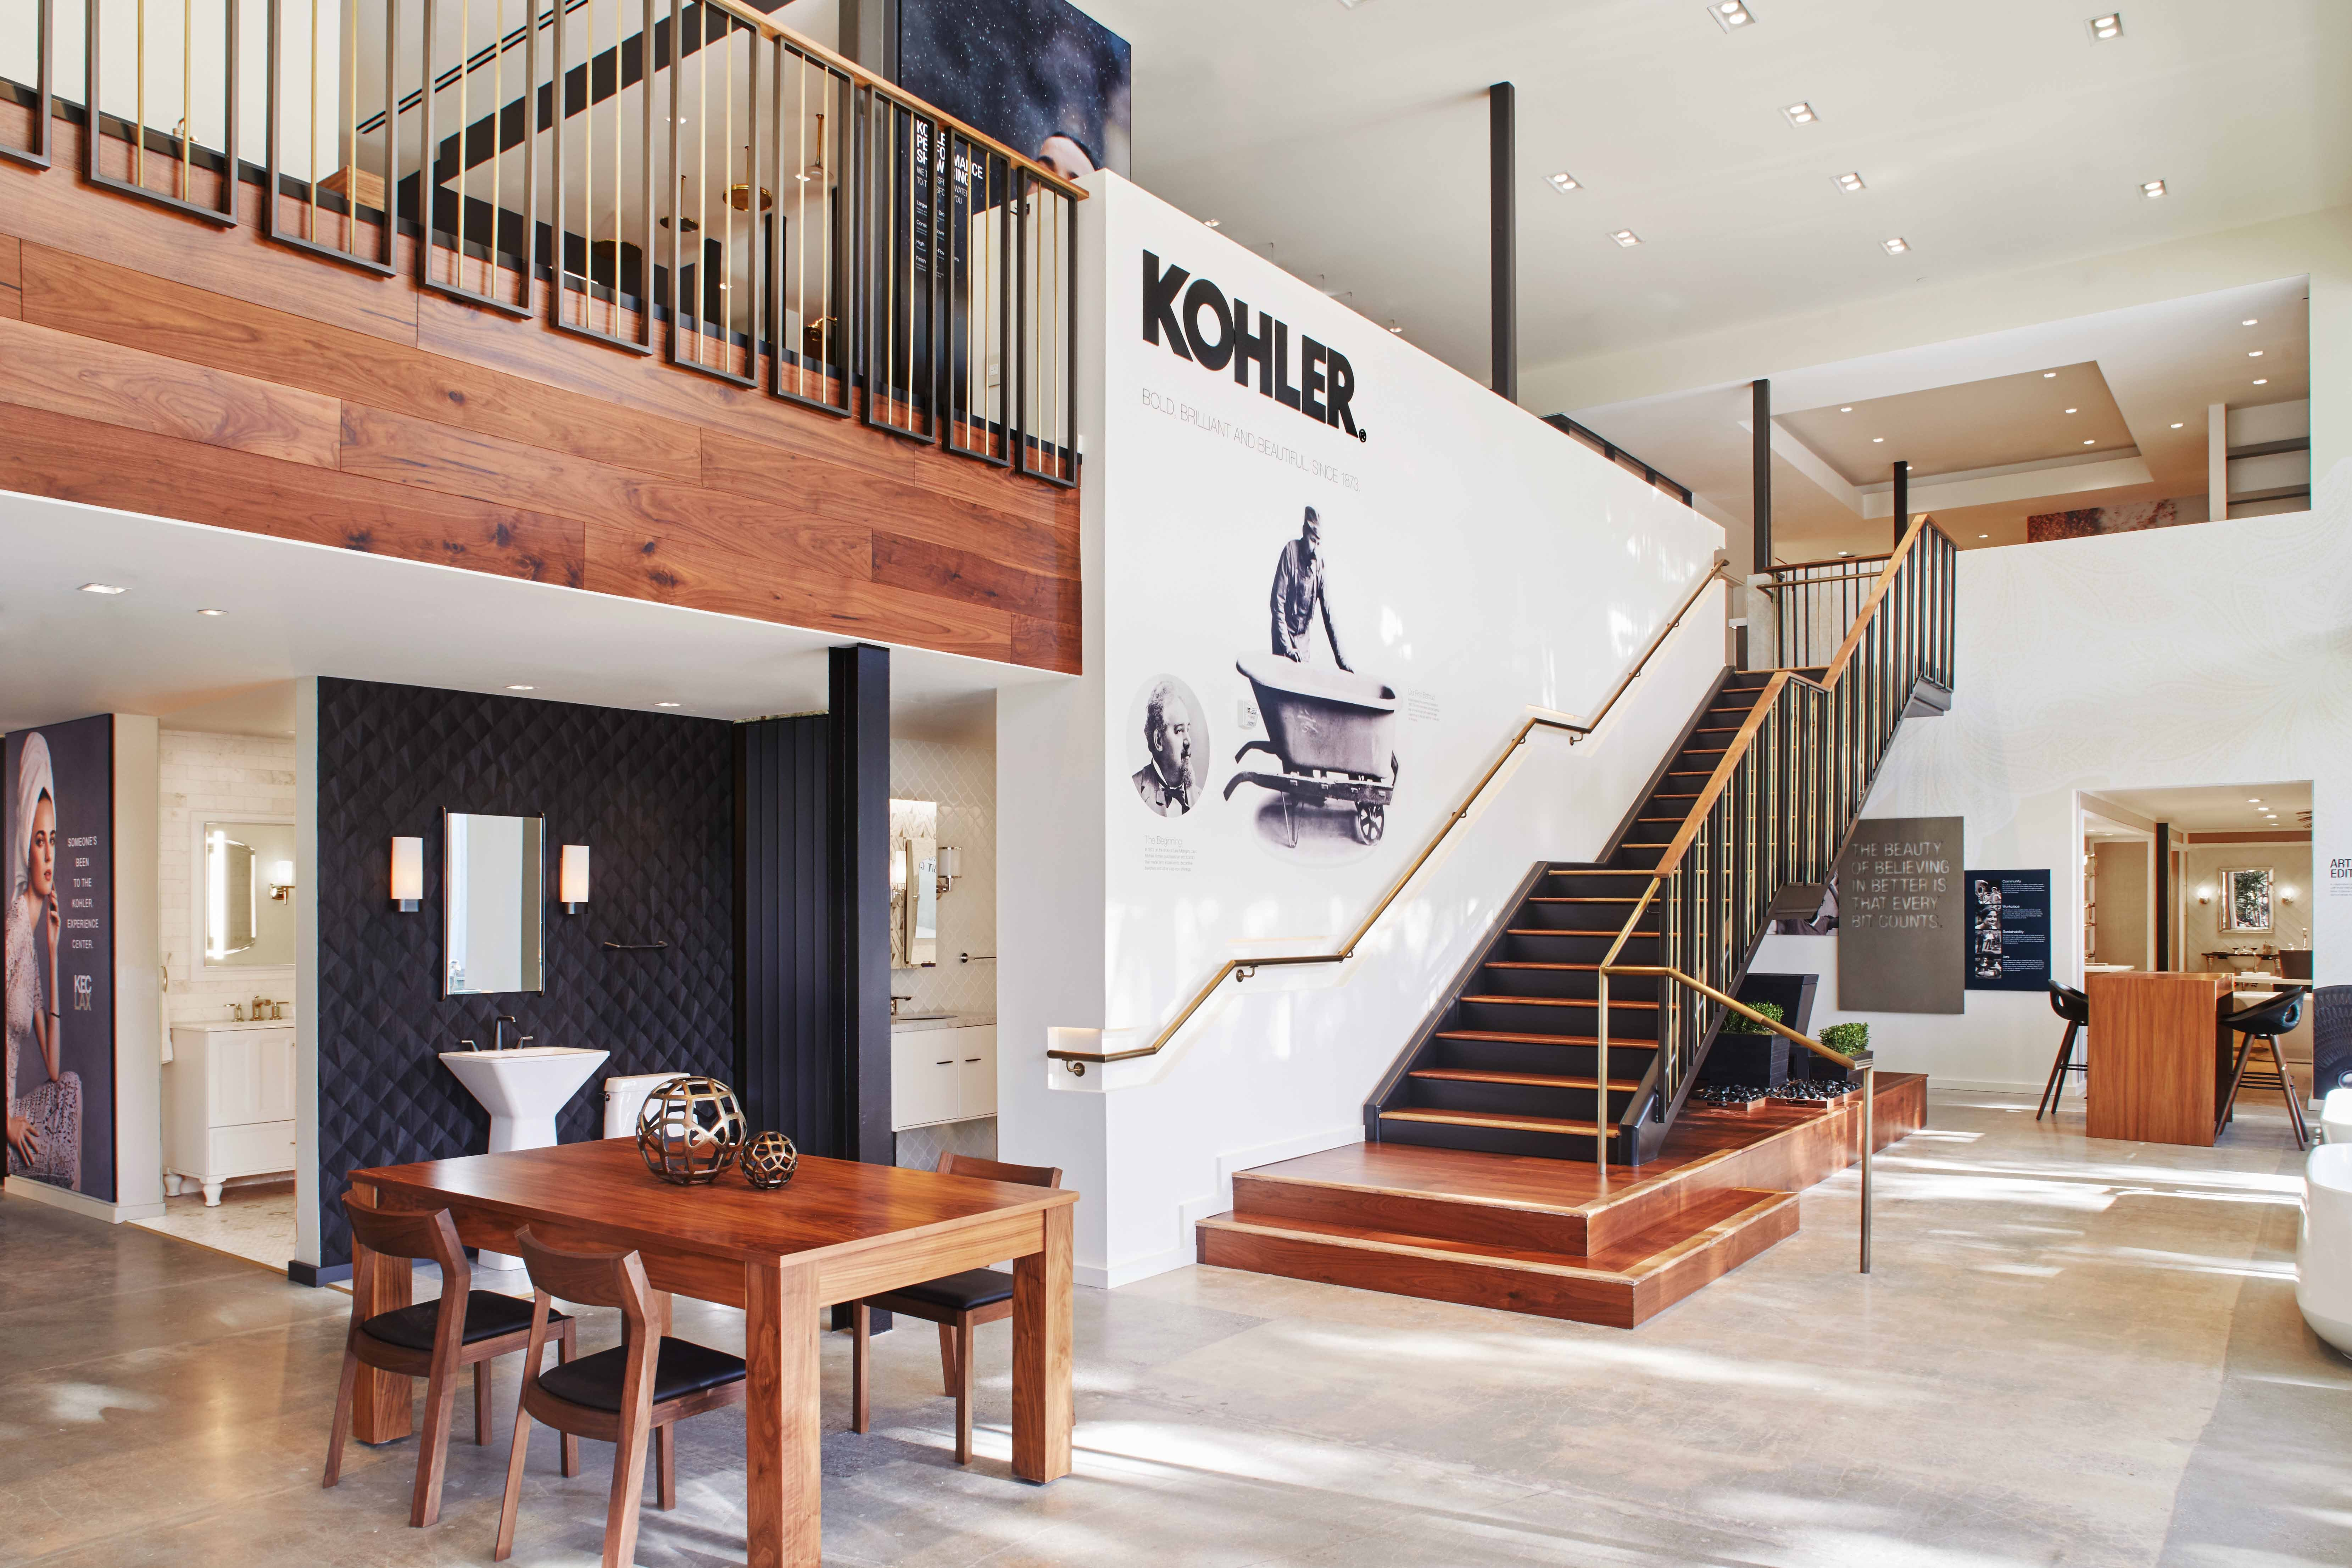 CORRECTING and REPLACING Kohler Co. Expands Its New Approach to ...